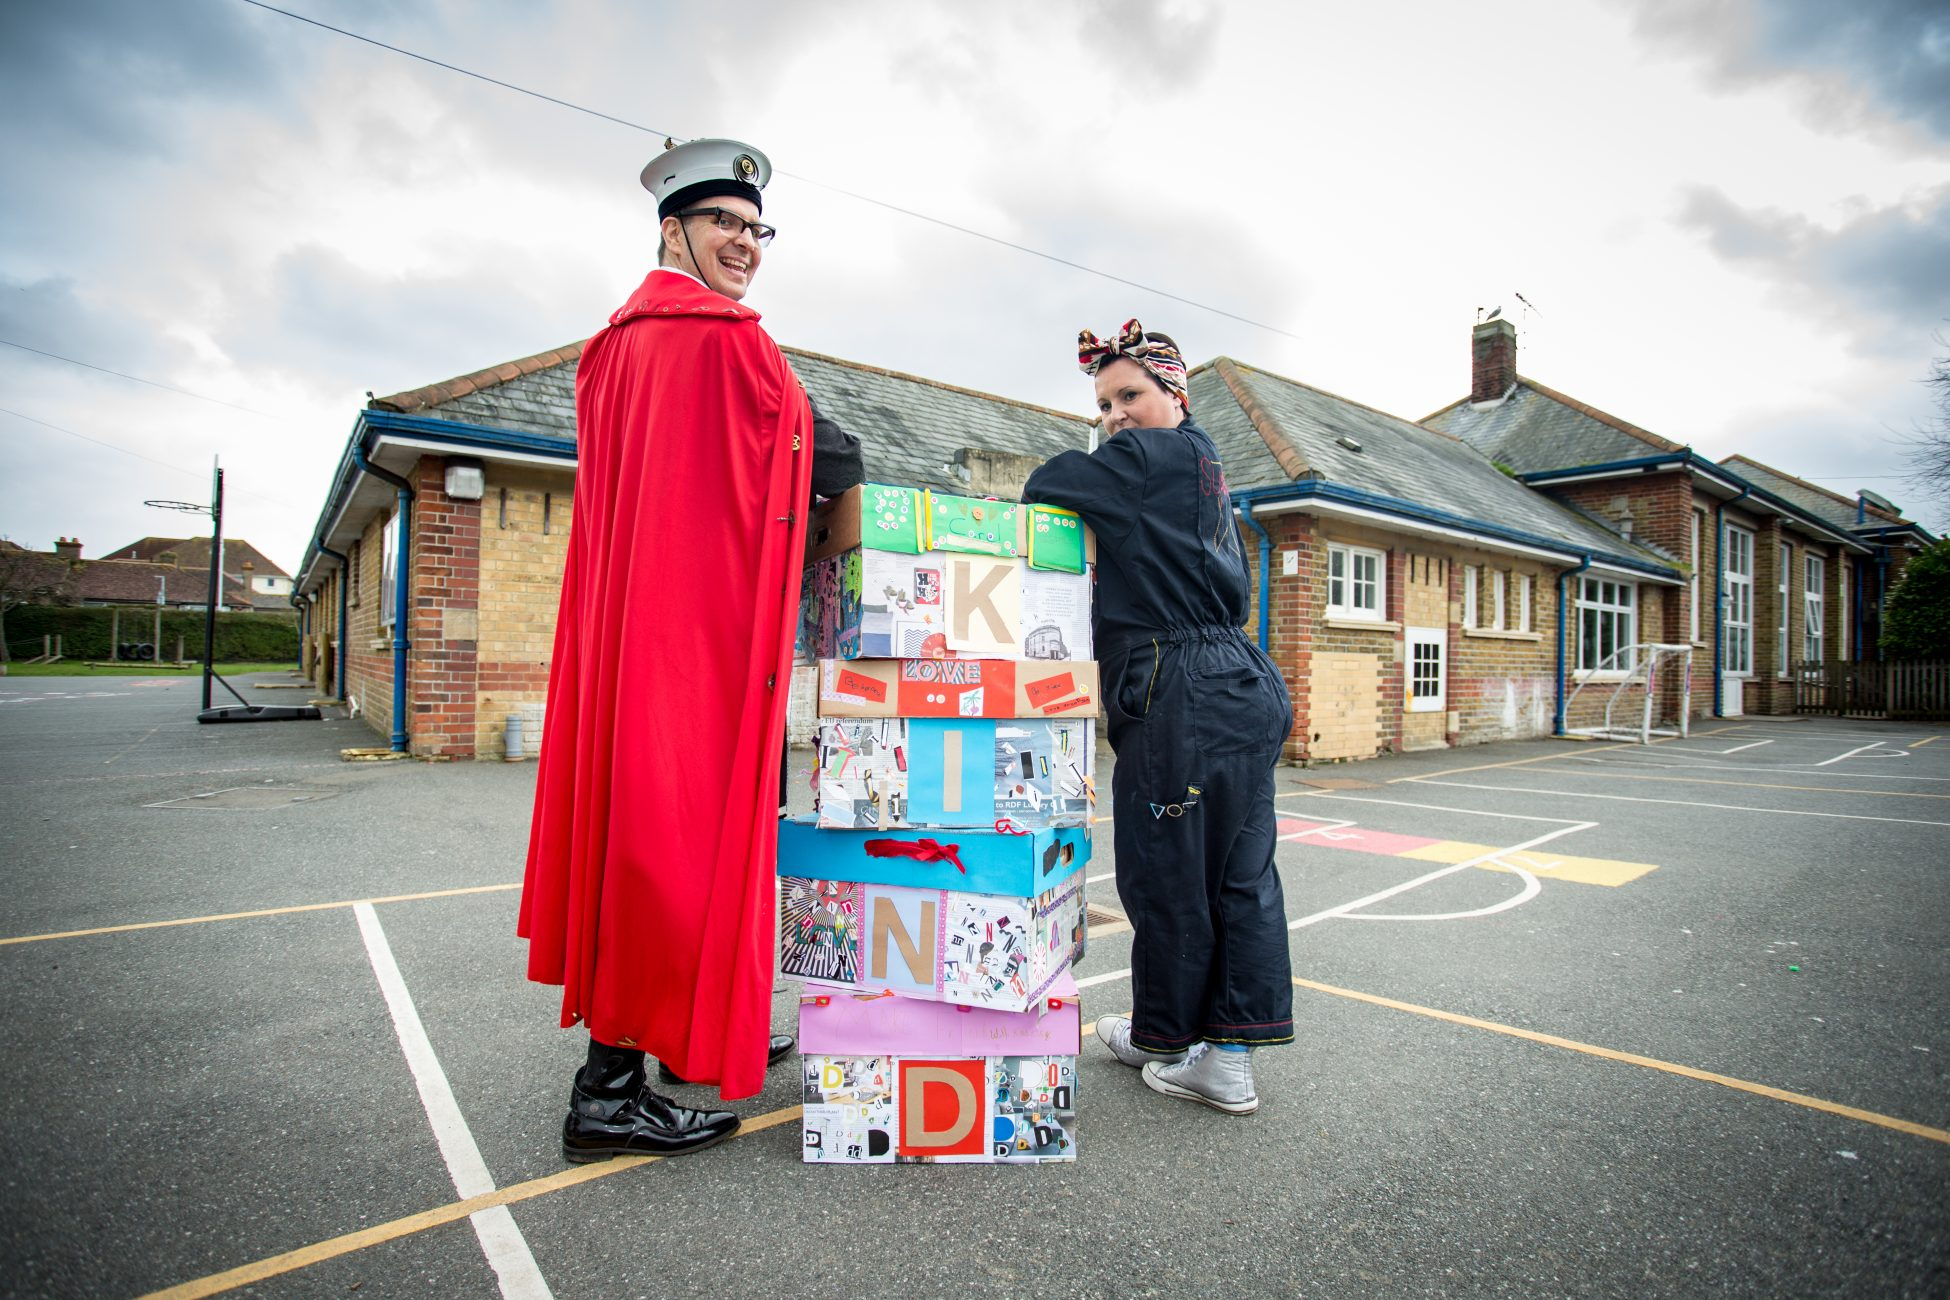 Photo of steampunk bob and nova marshall standing in a school playground. Between them is a stack of four colourfully decorated cardboard boxes each with a letter on the side so that they spell out the word KIND